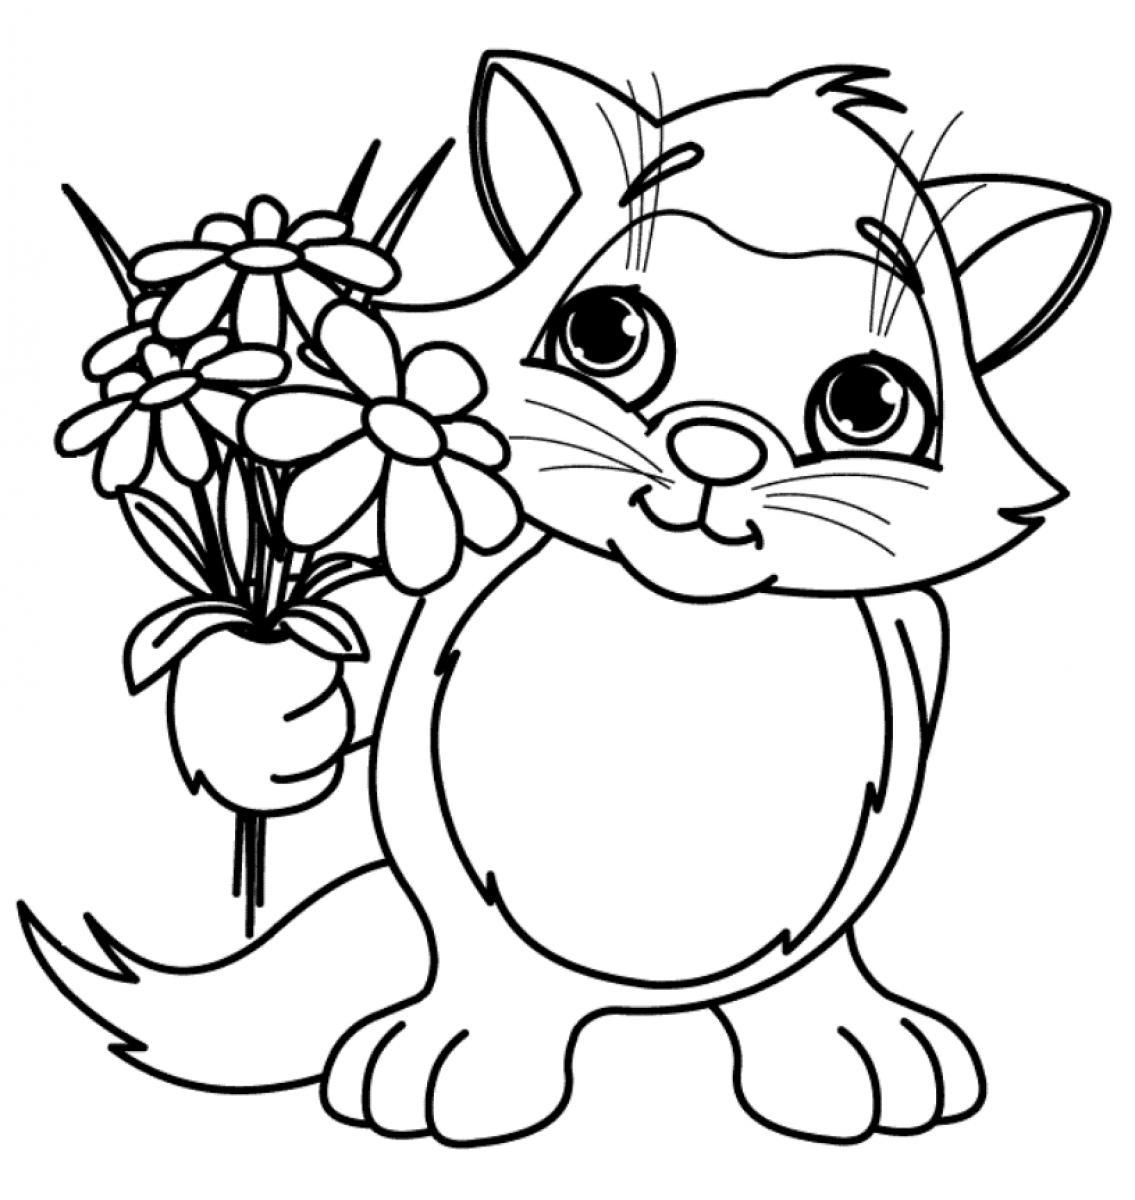 Spring Flower Coloring Pages To Download And Print For Free Printable Flowers Coloring Pages